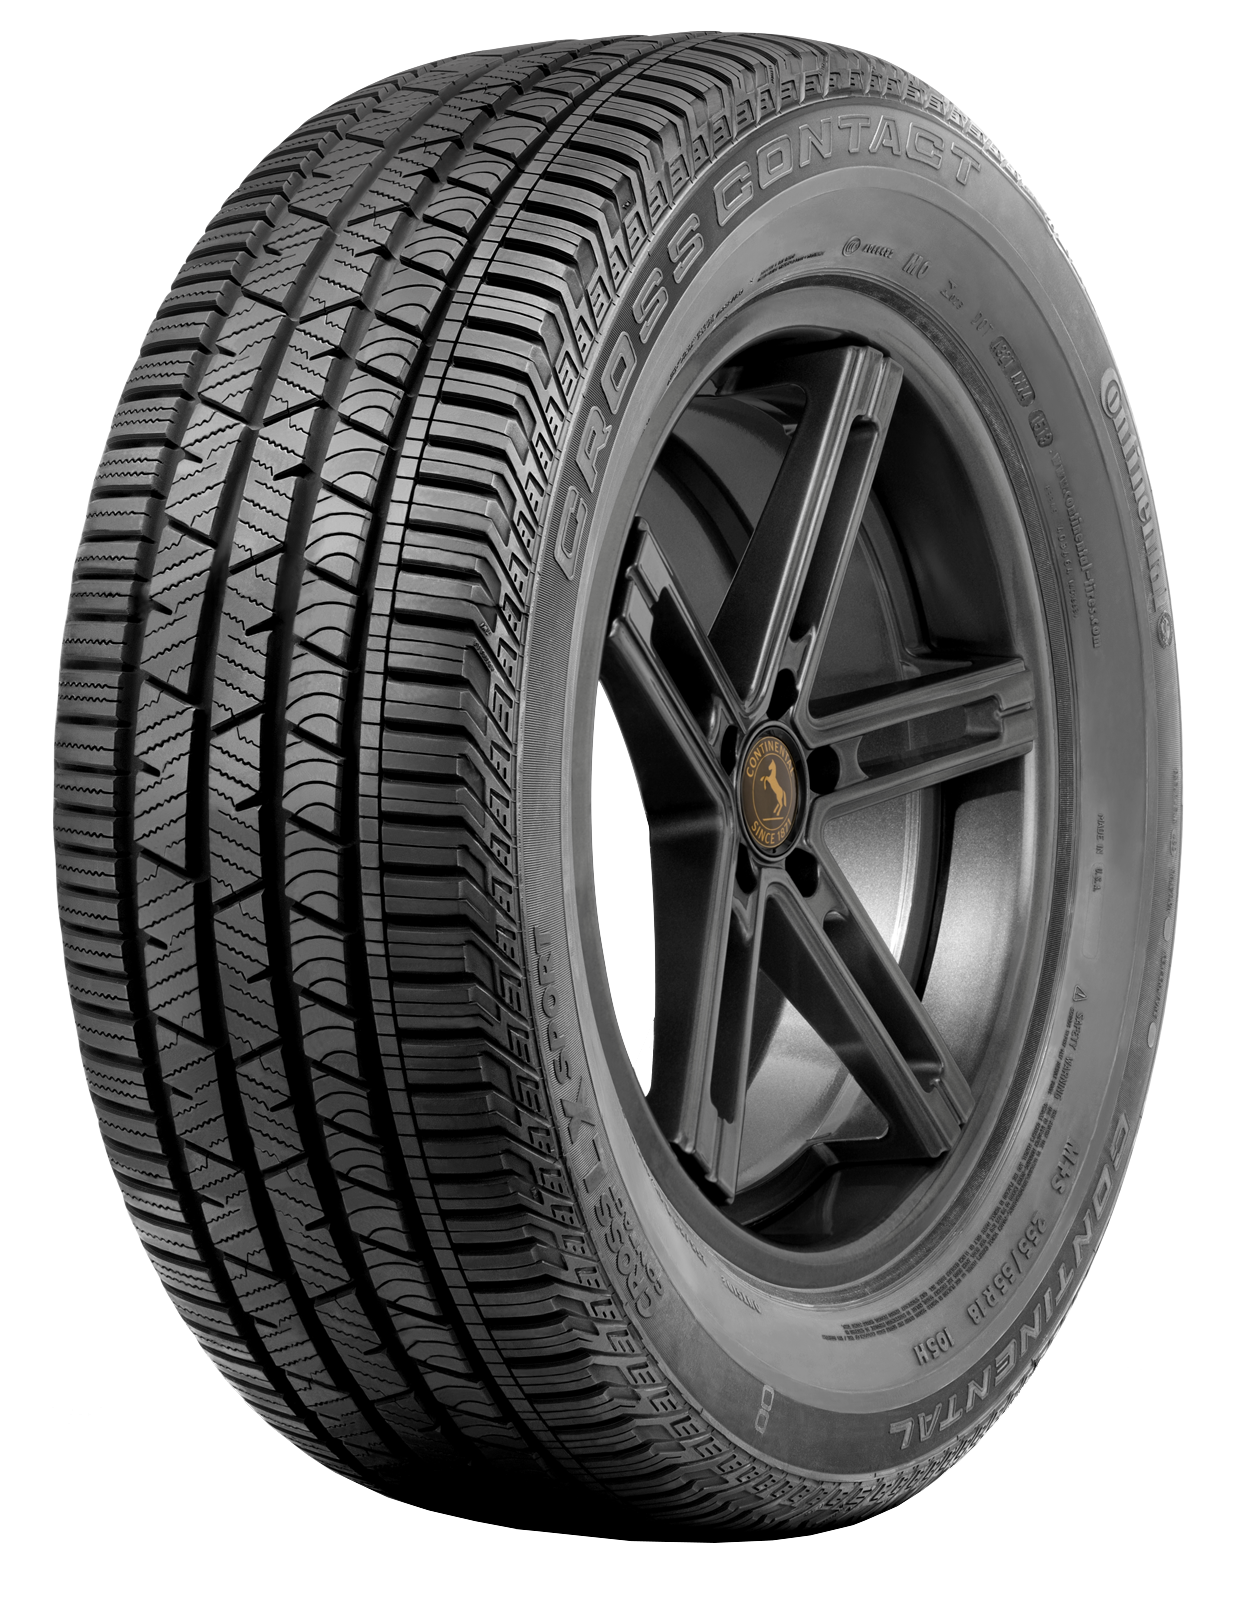 CONTINENTAL 235/60 R18 ContiCrossContact LX Sport 103H